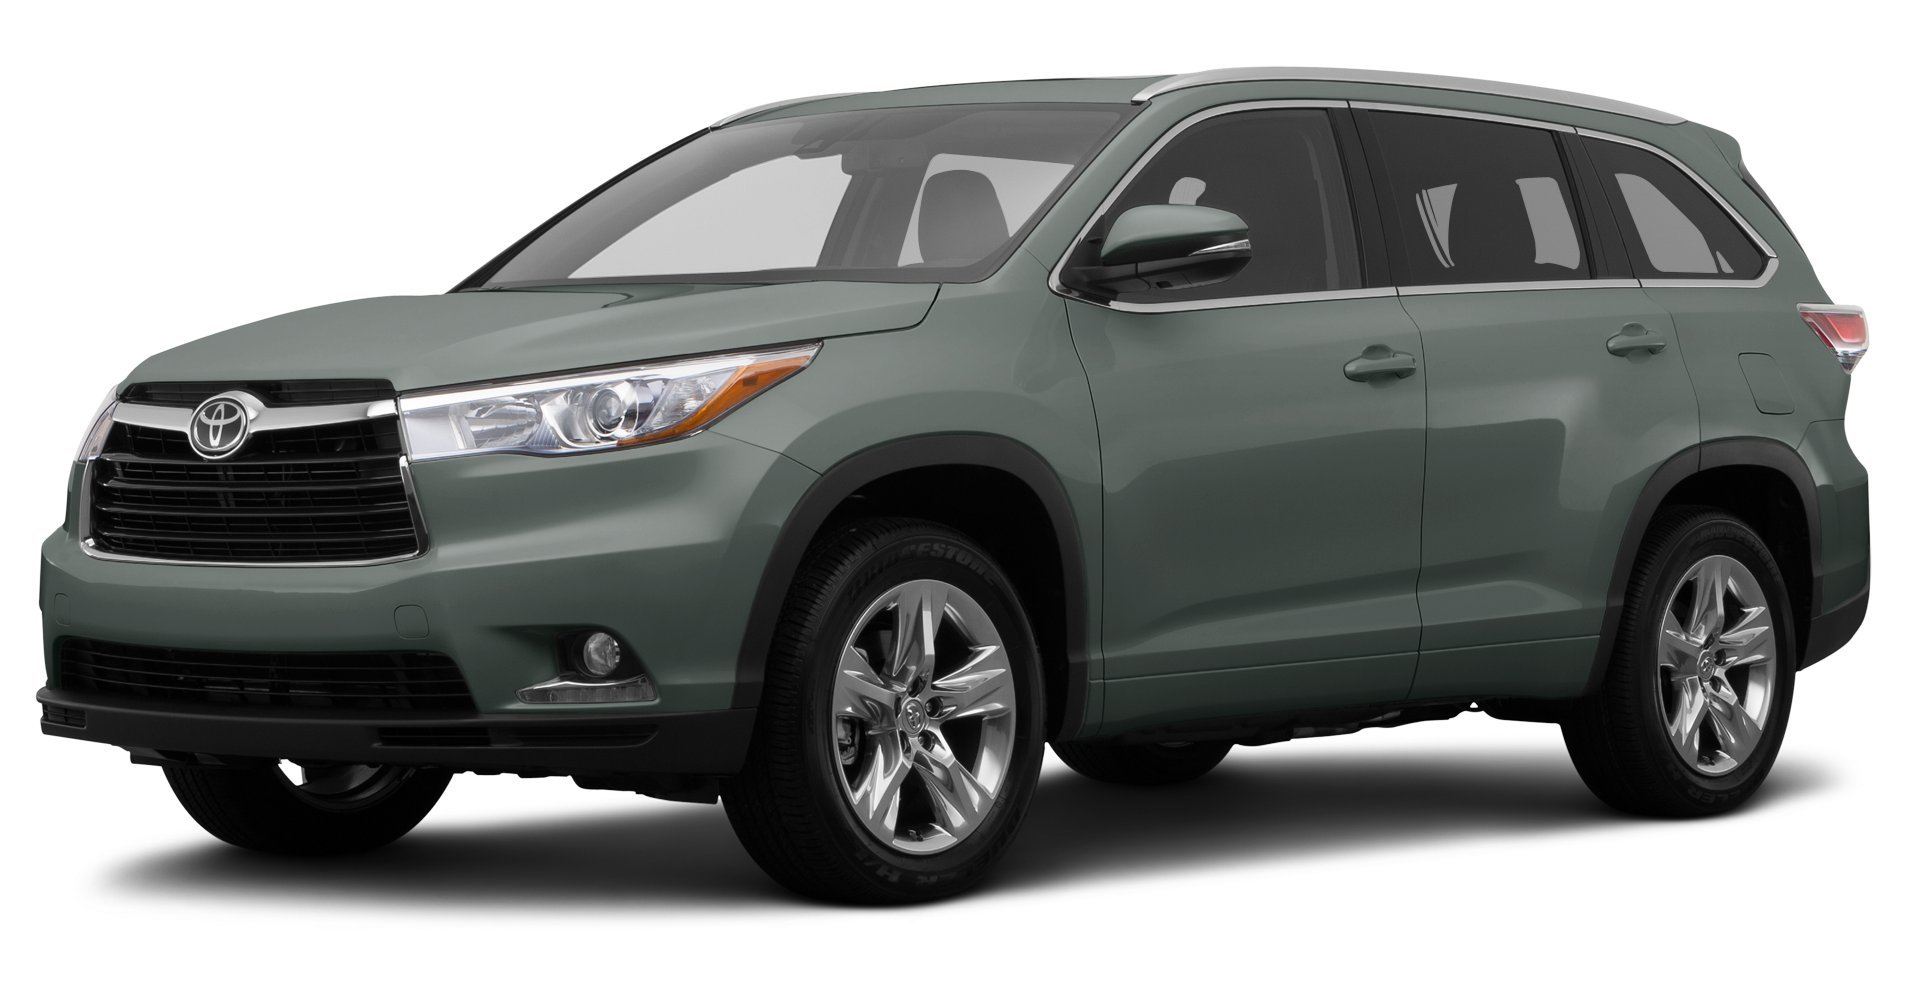 2014 acura mdx reviews images and specs. Black Bedroom Furniture Sets. Home Design Ideas